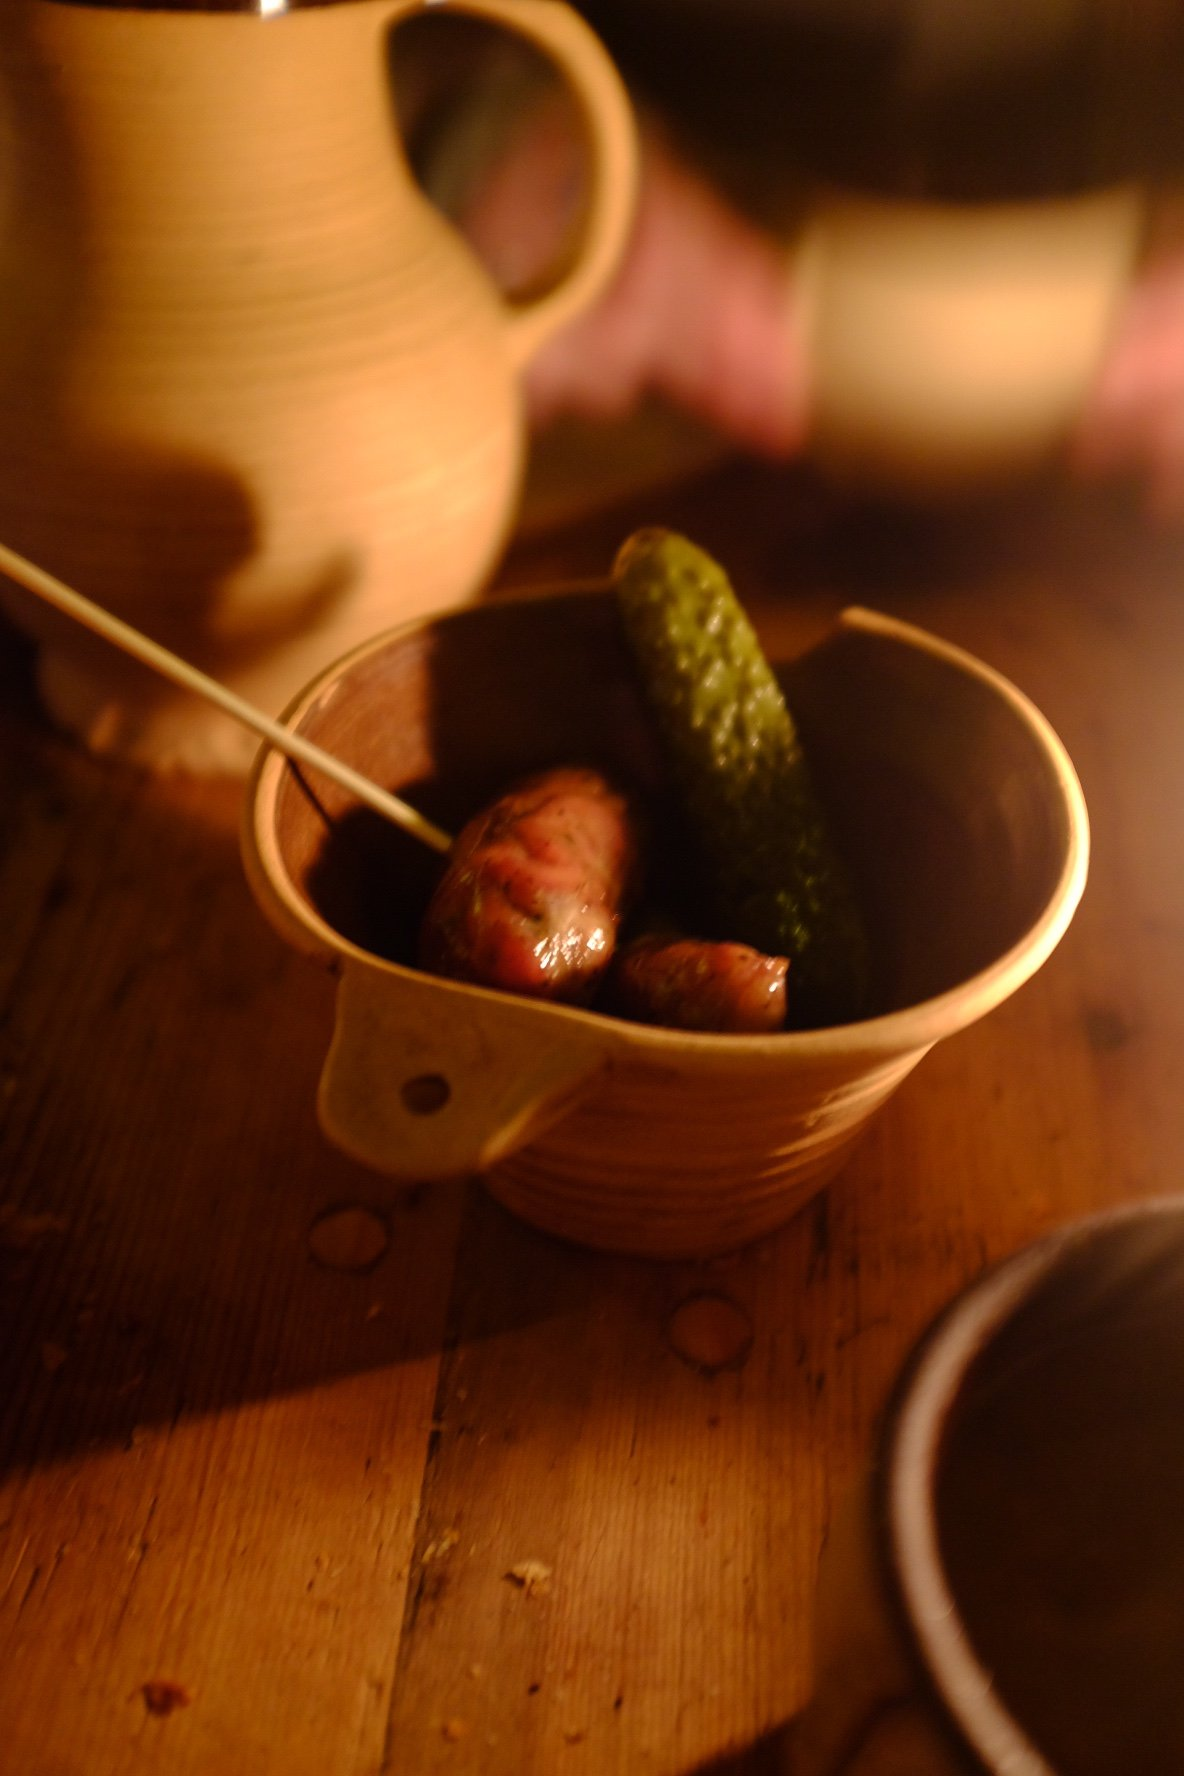 Ox sausage and pickle in a ceramic bowl we ate in the Draakon in Tallinn